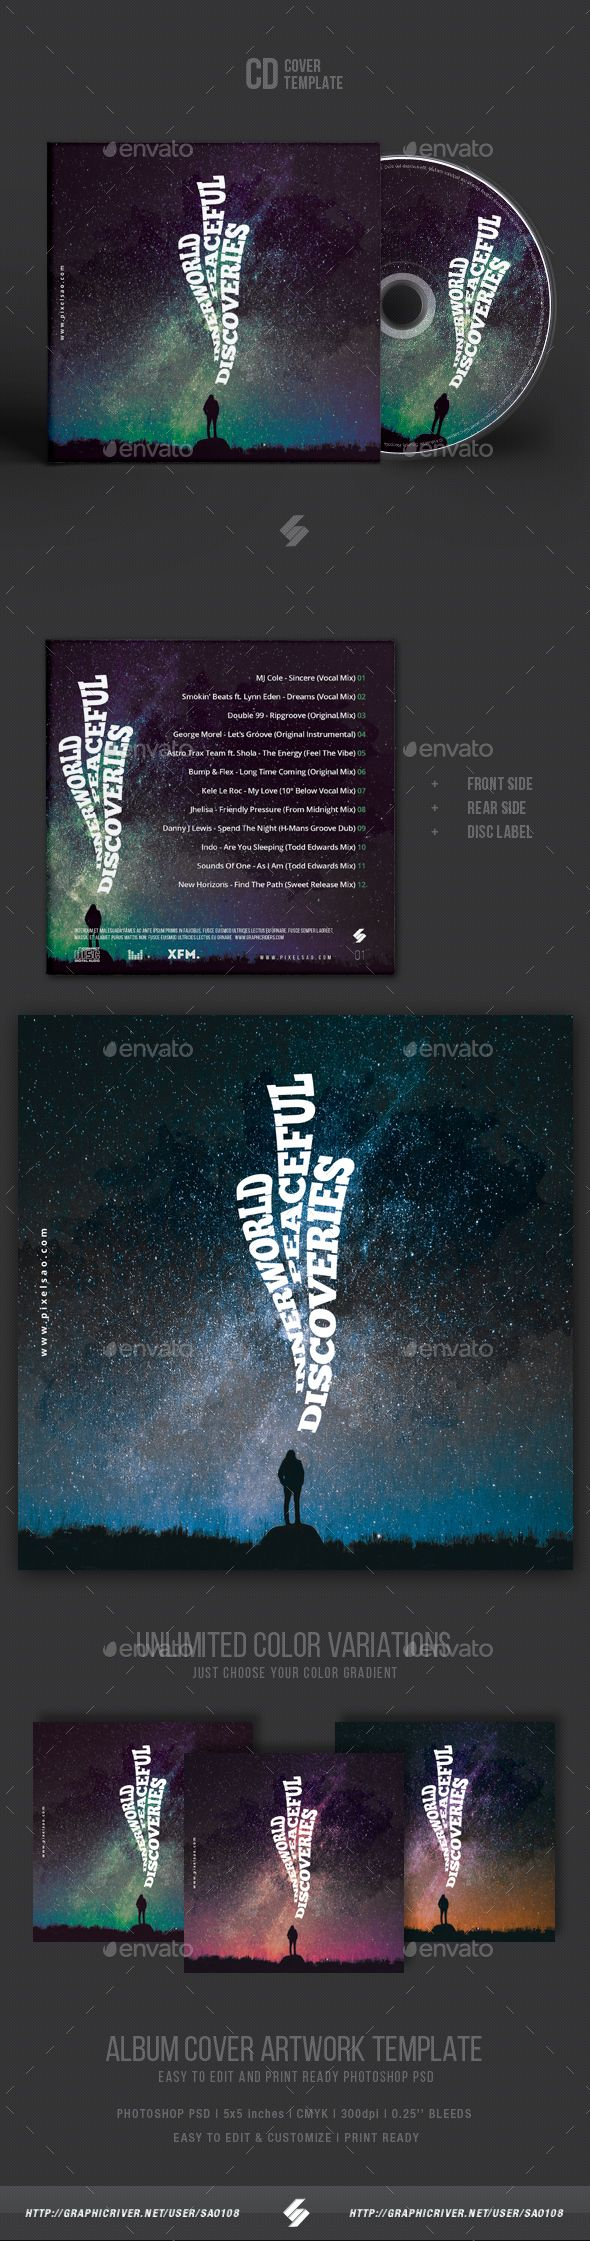 Inner World Discoveries - Creative CD Cover Artwork Template PSD